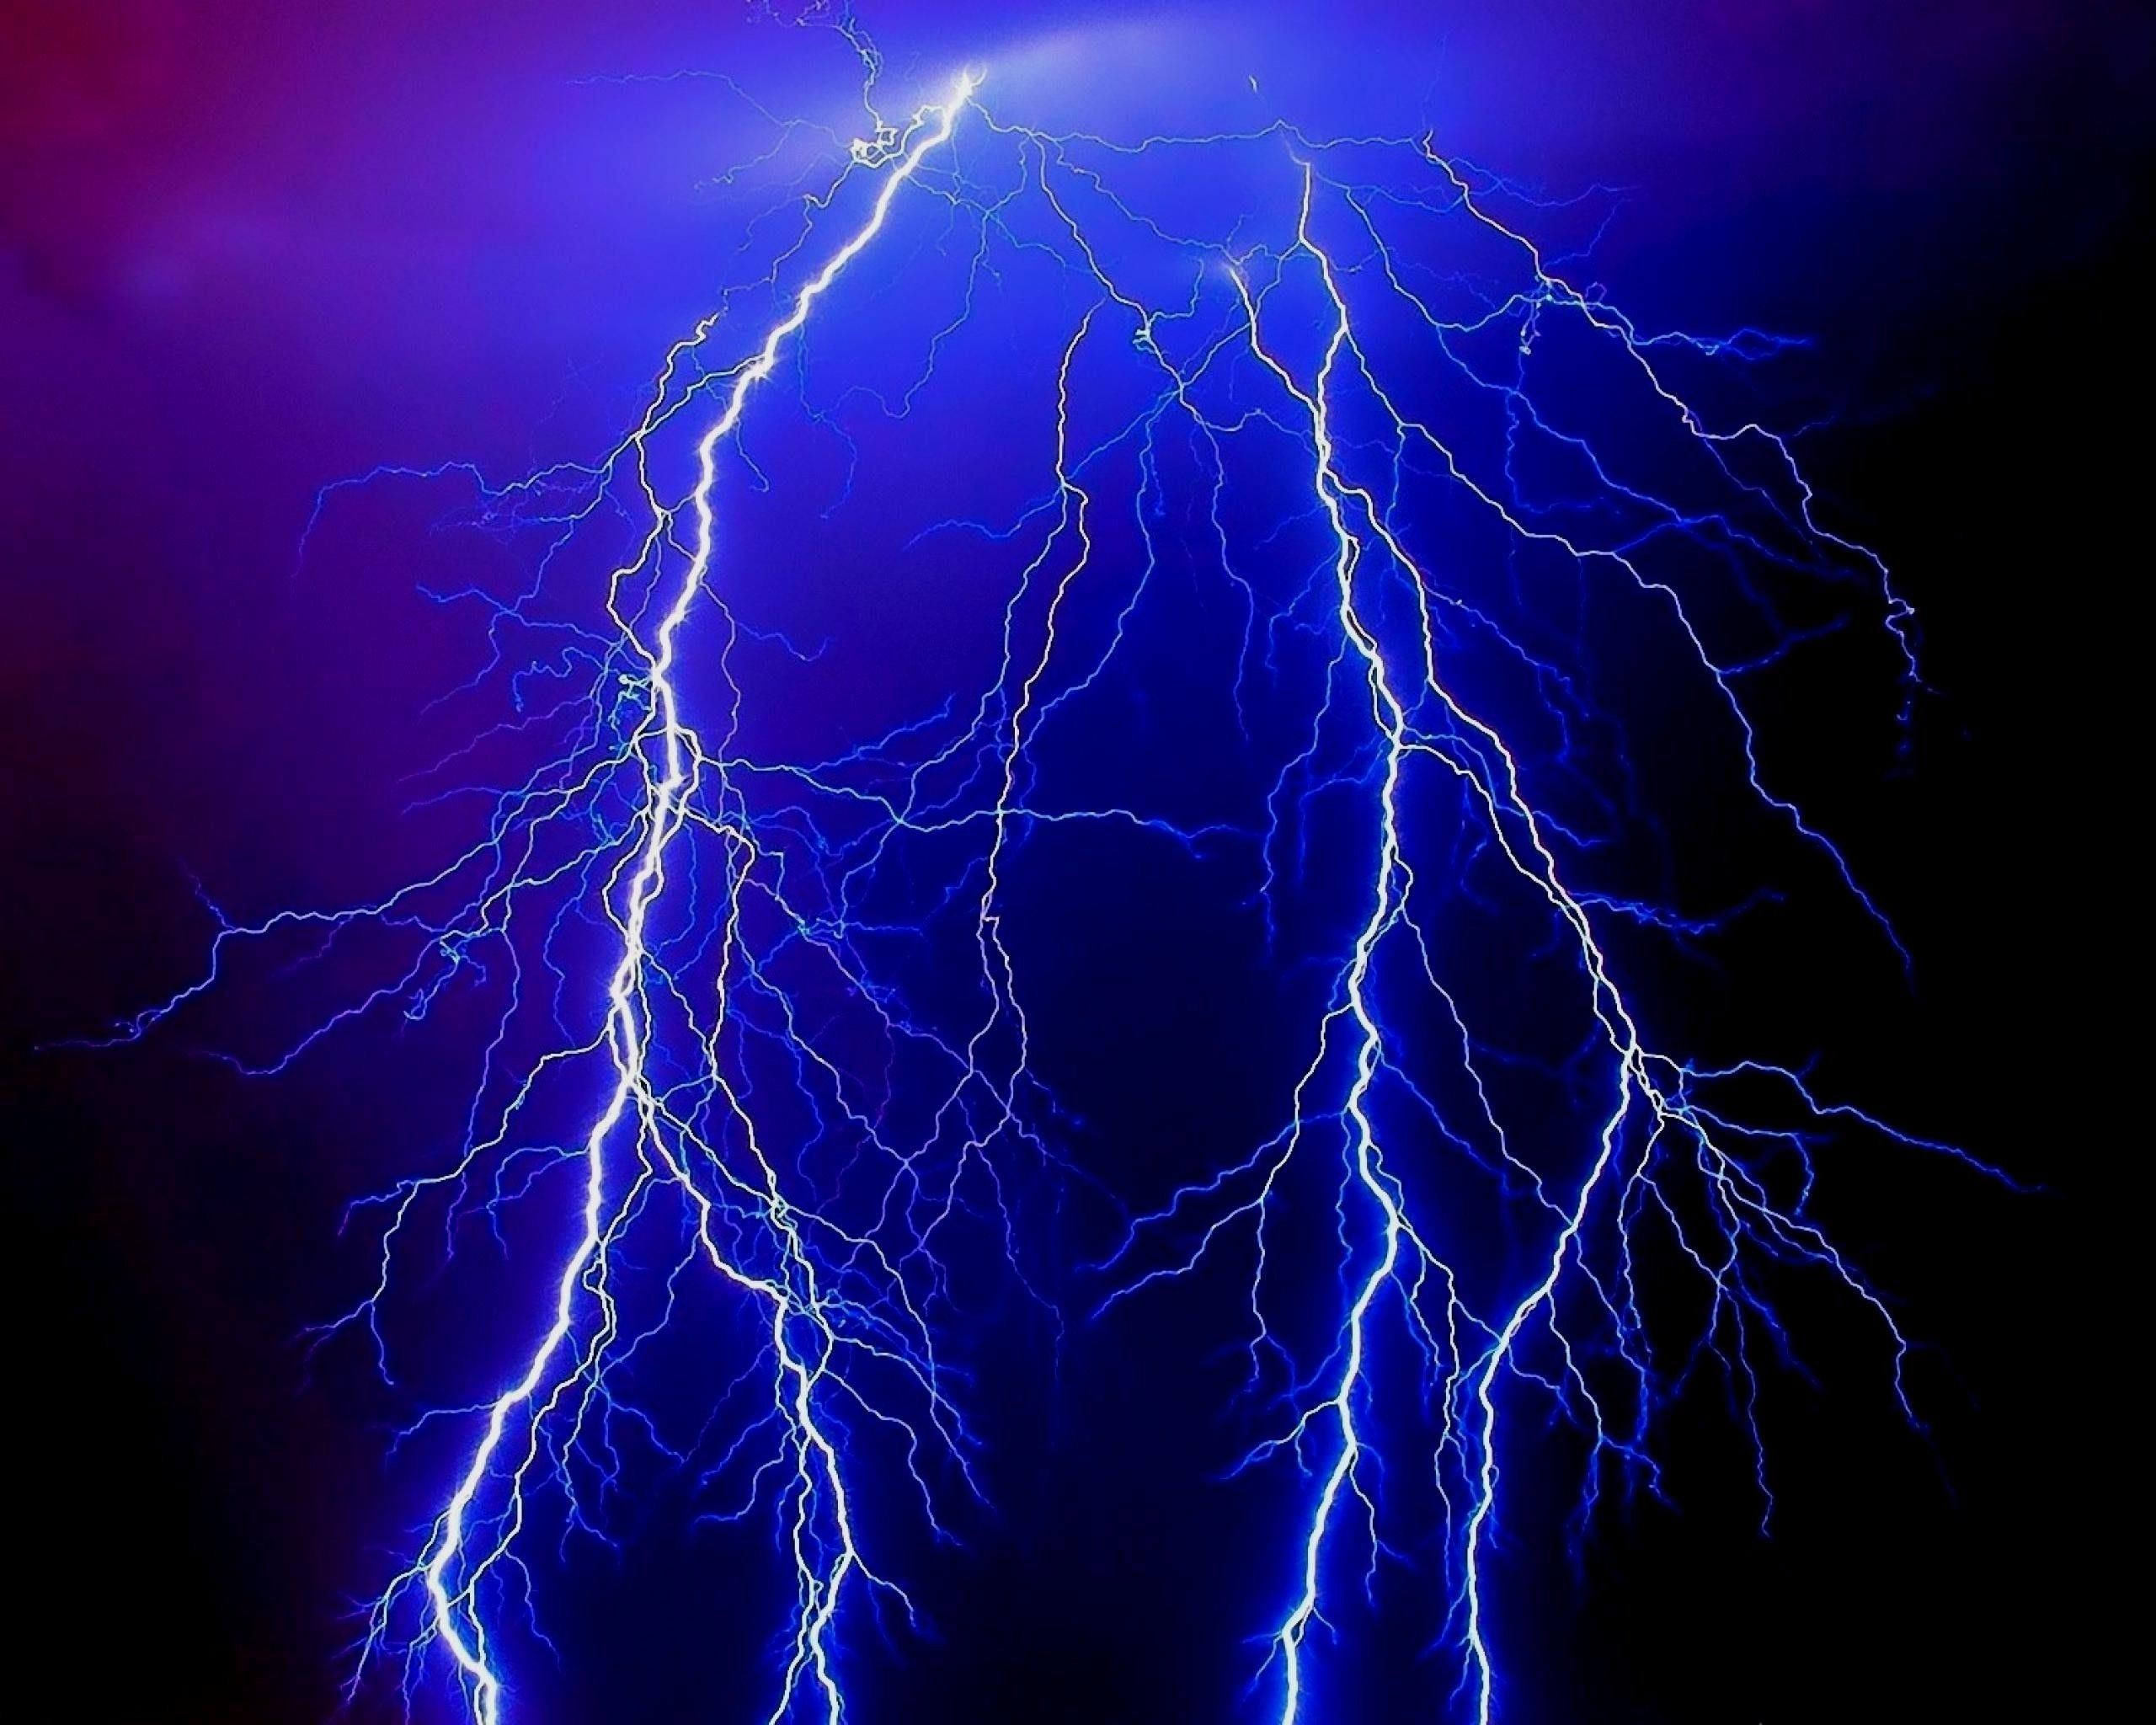 Blue Lightning Wallpapers Top Free Blue Lightning Backgrounds Wallpaperaccess Select from premium lightning background images of the highest quality. blue lightning wallpapers top free